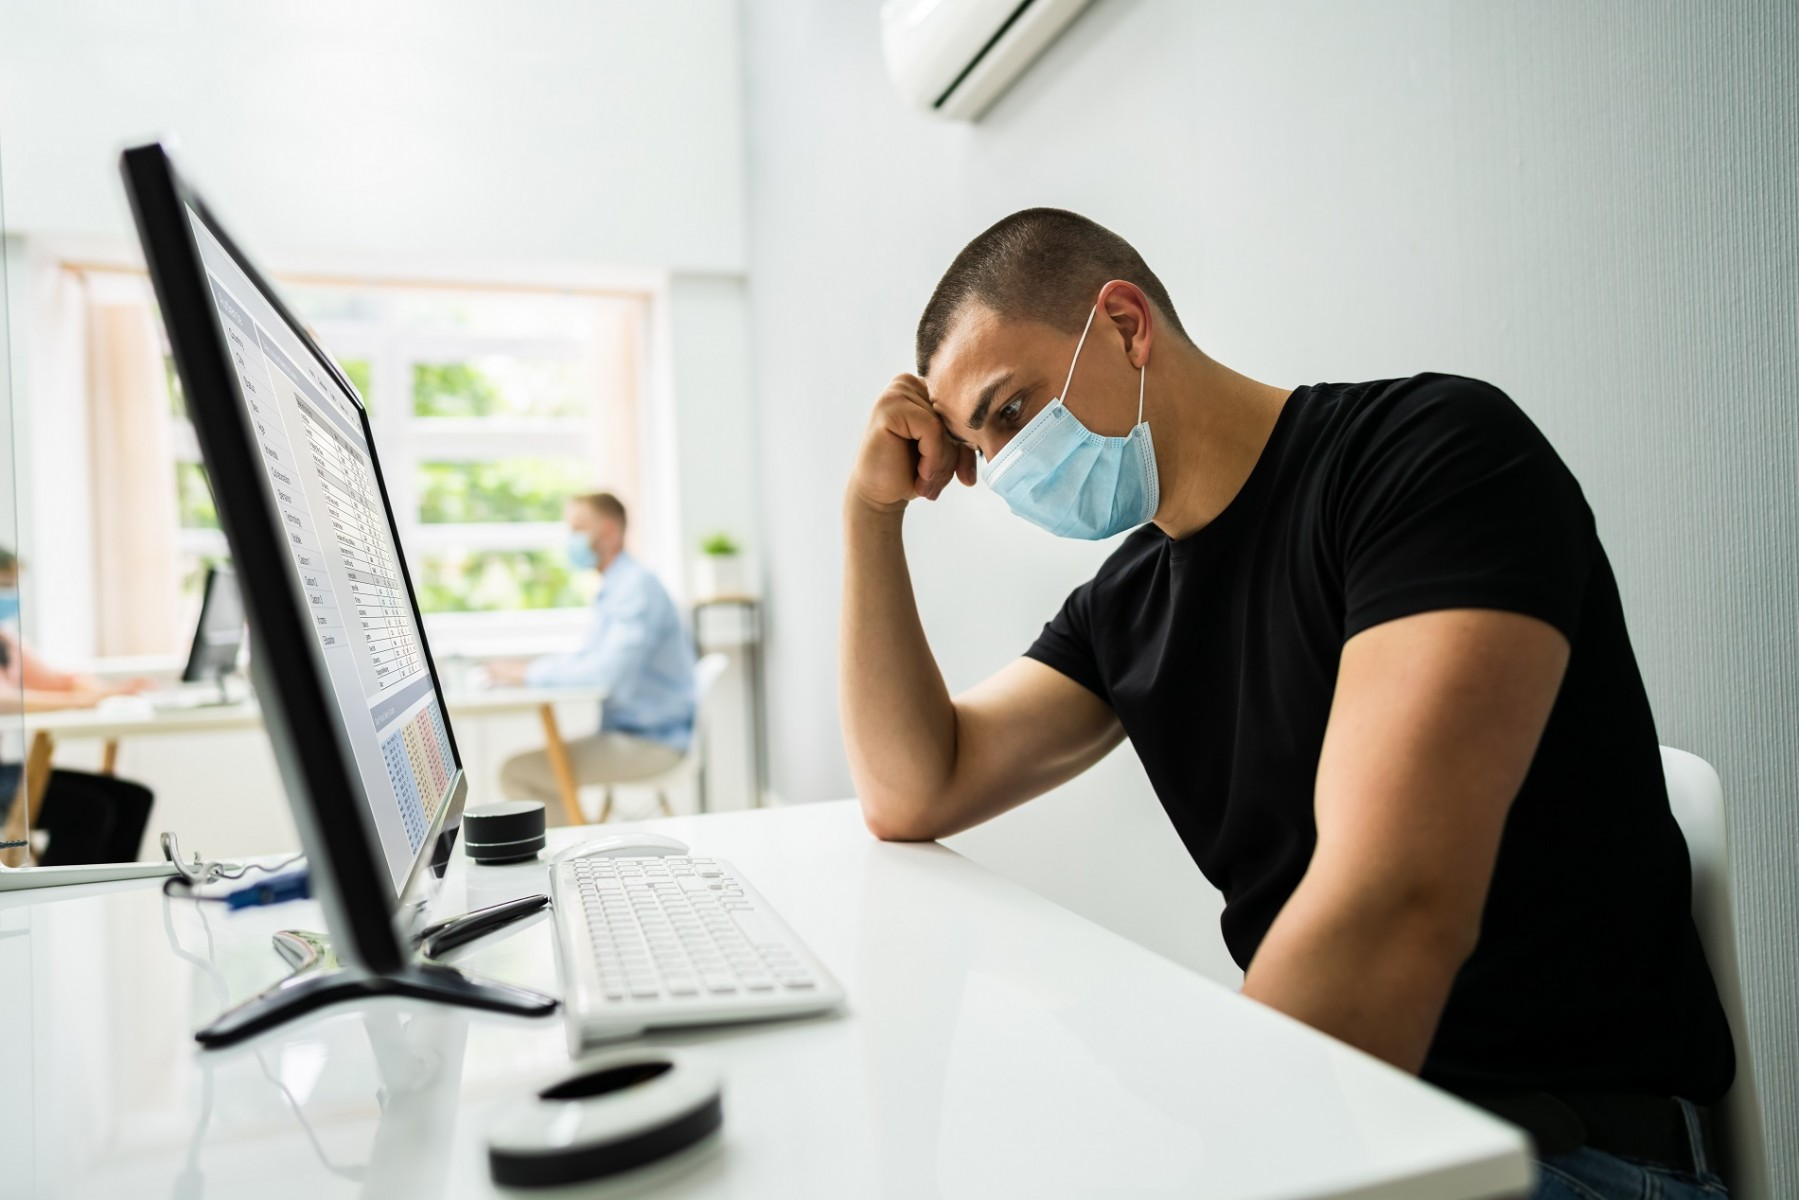 Pandemic stress making you less engaged at work? You're not alone.